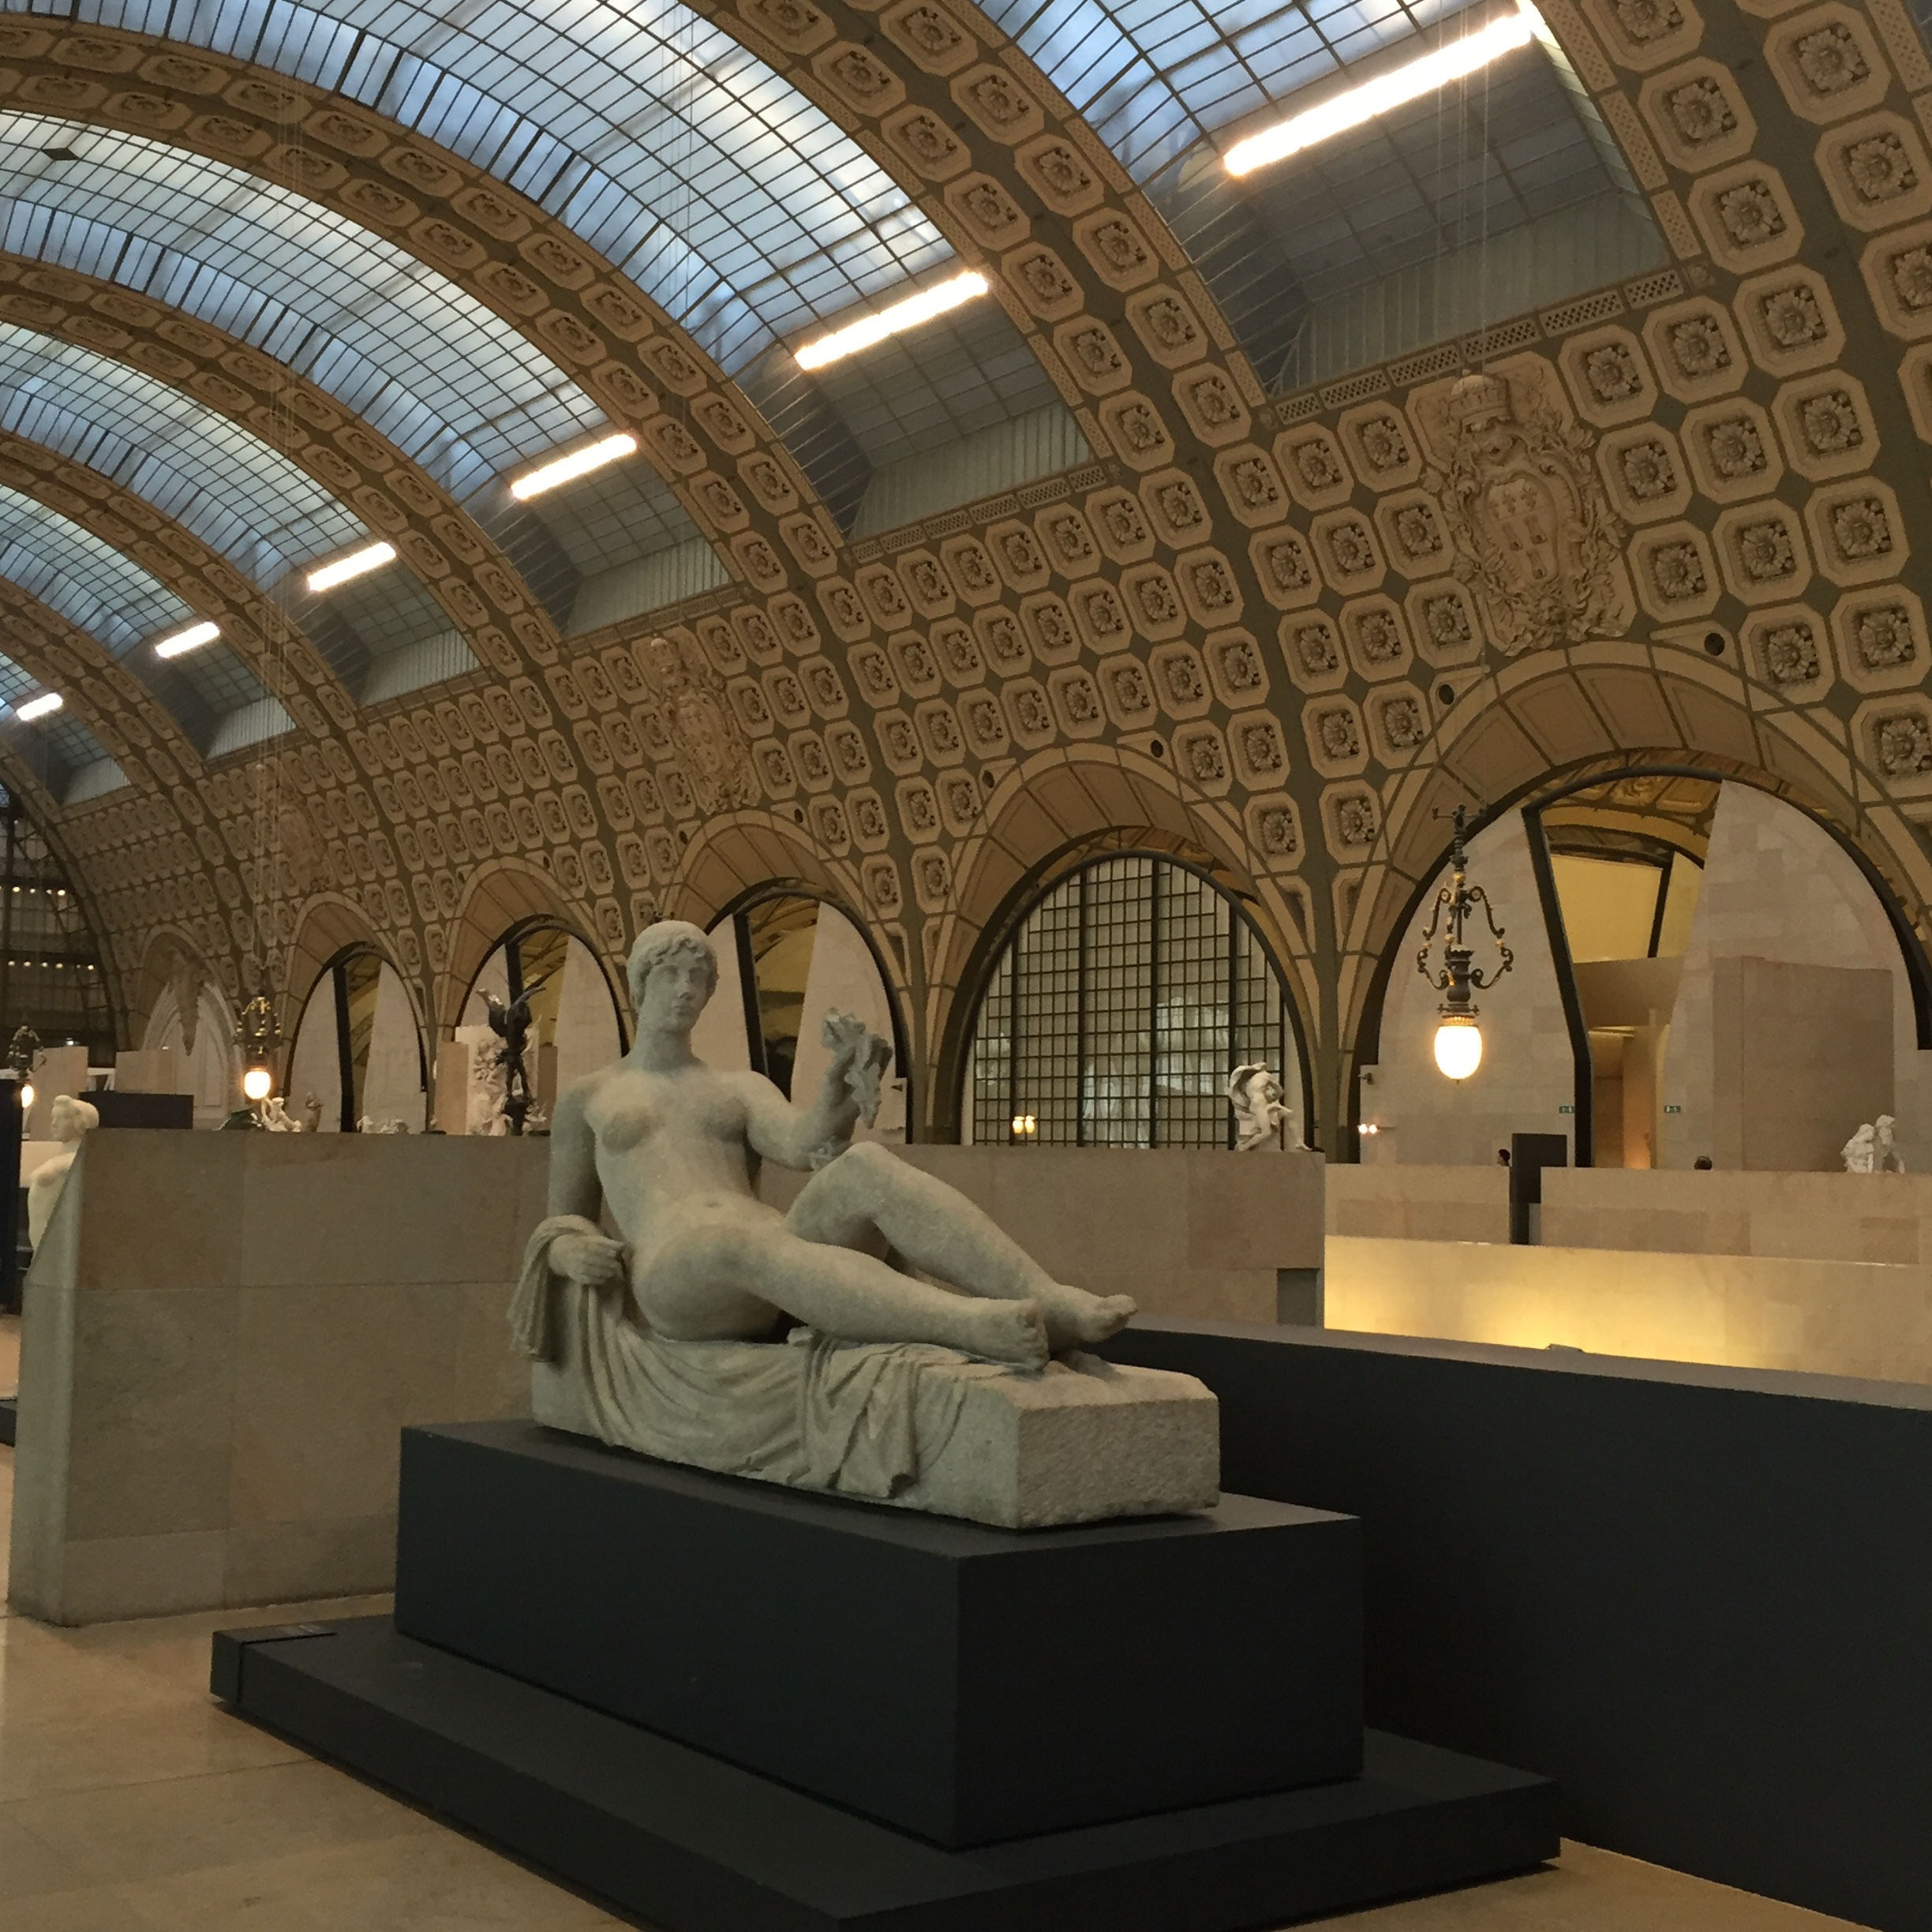 The view from the bench where we took a rest at the Musée d'Orsay